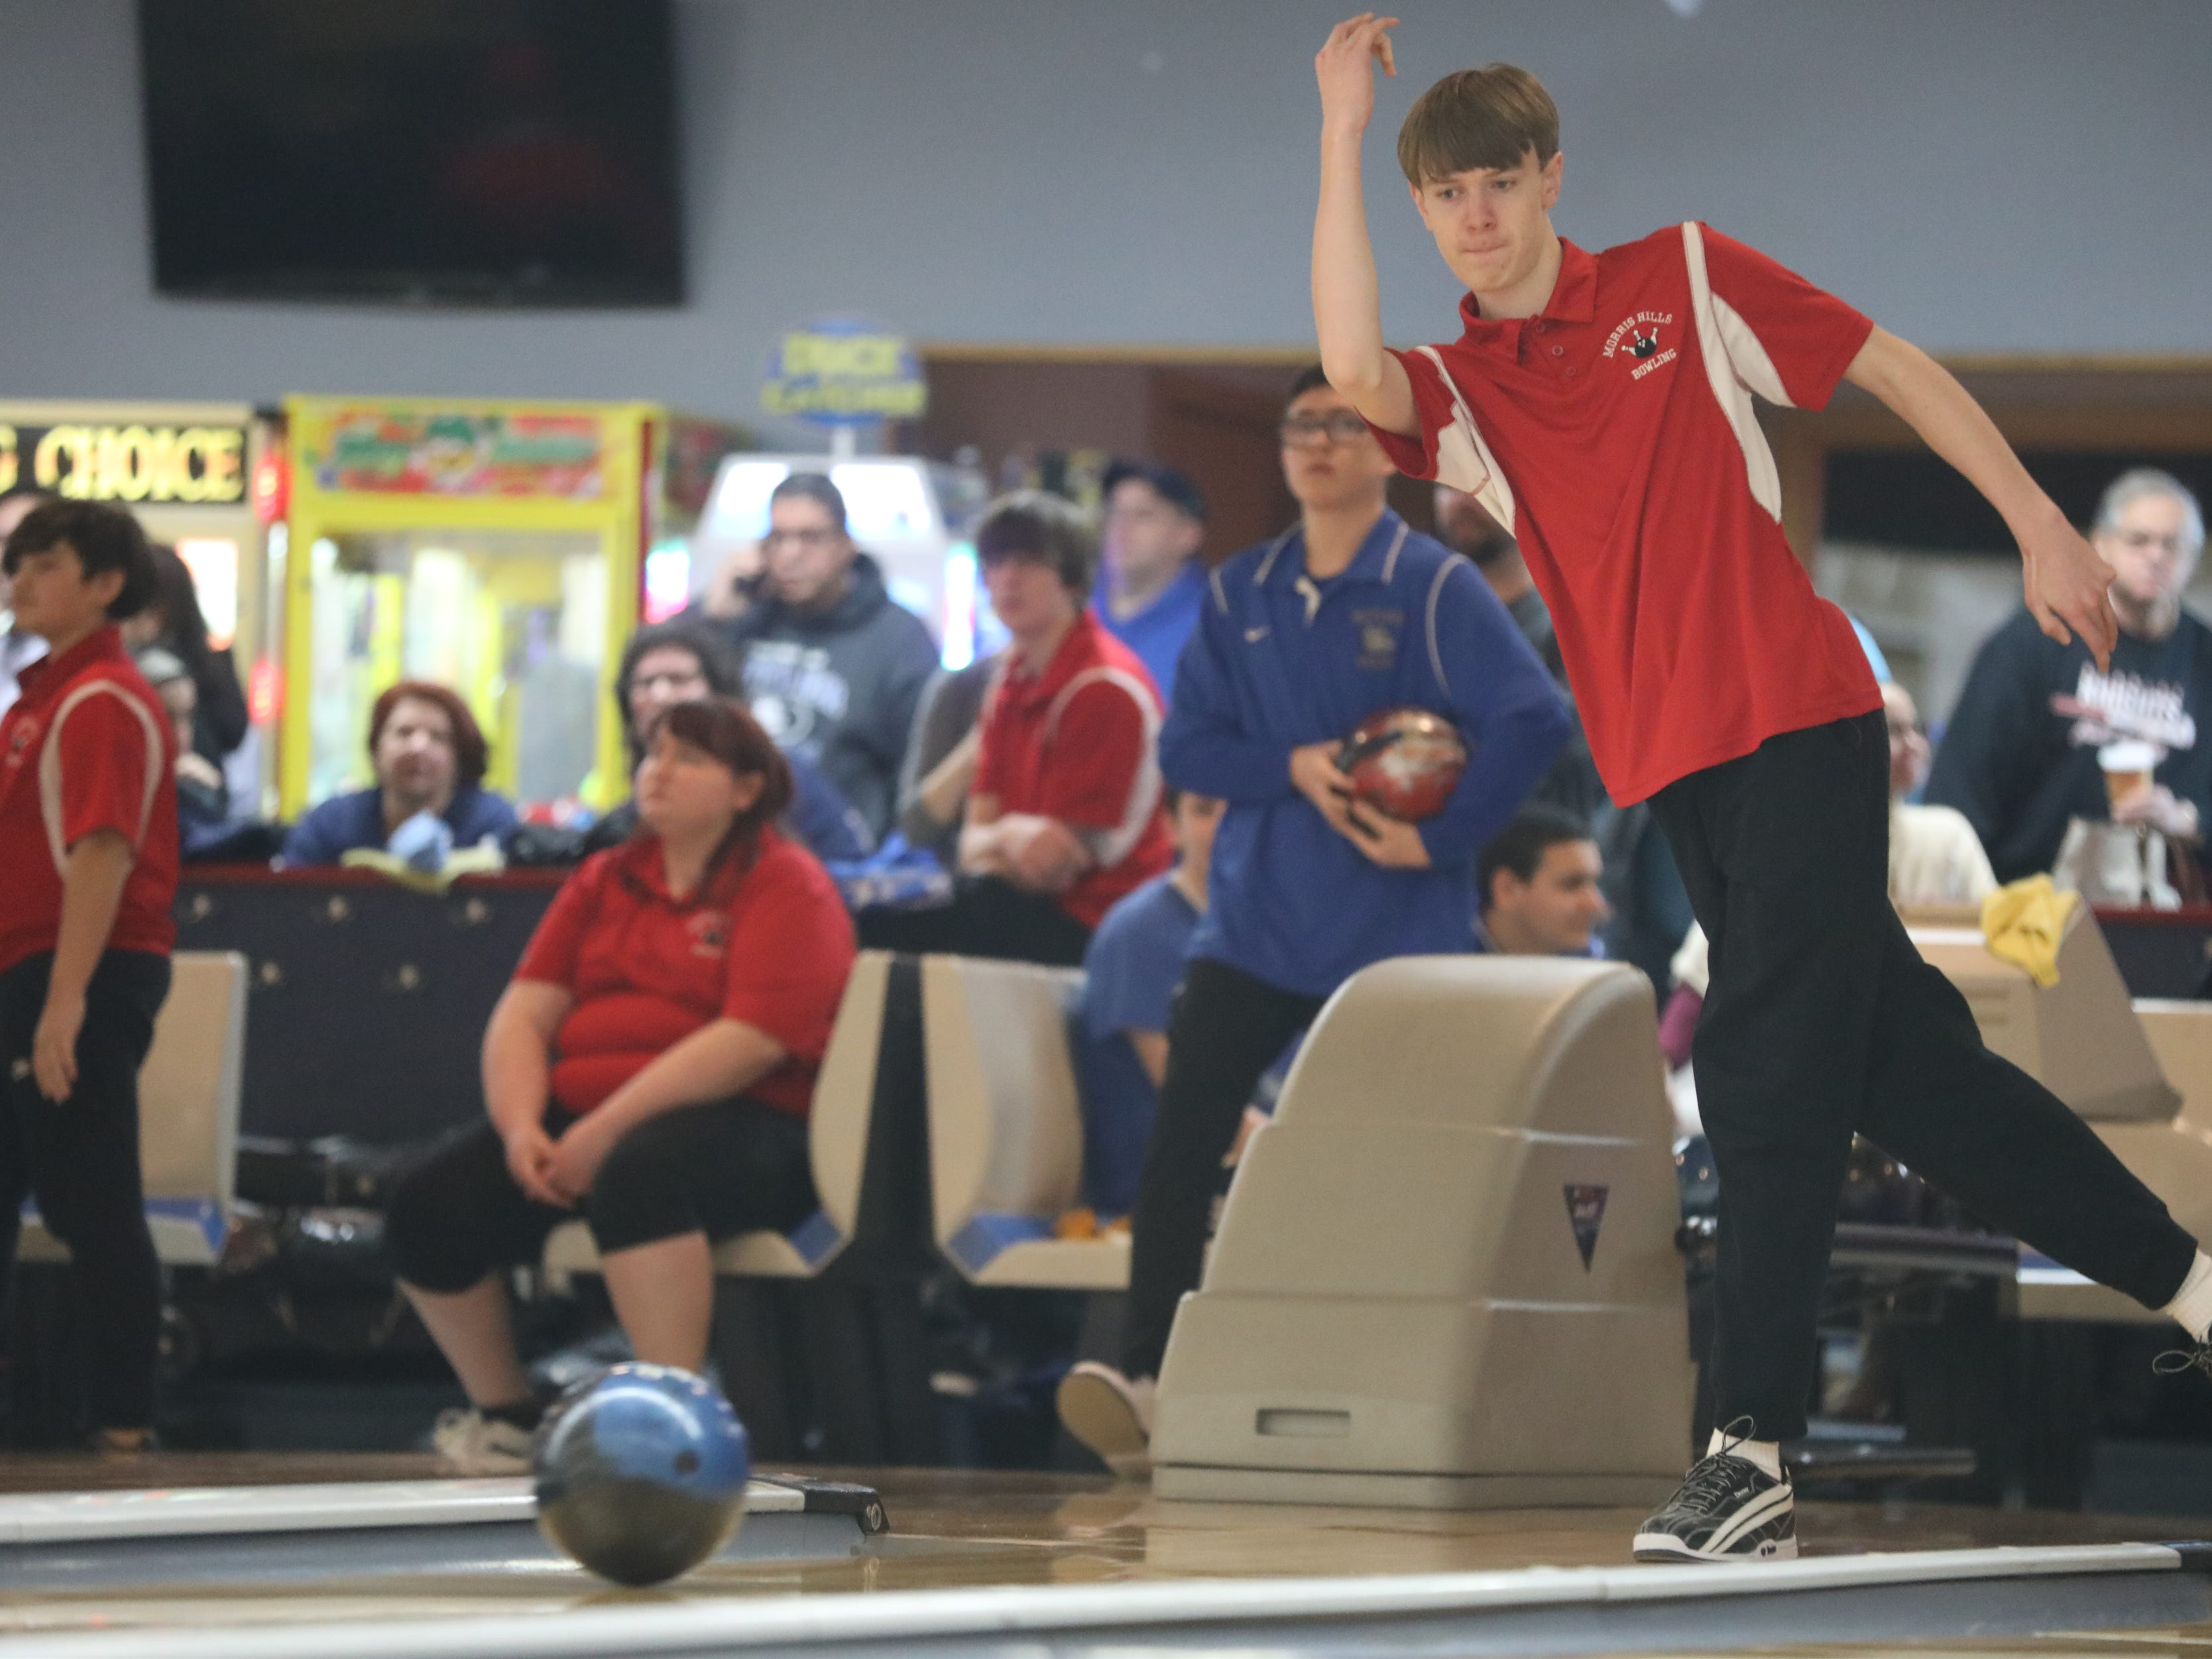 Will Simkins, of Morris Hills, competes at the Morris County Bowling Tournament, in Rockaway. Thursday, January 24, 2019